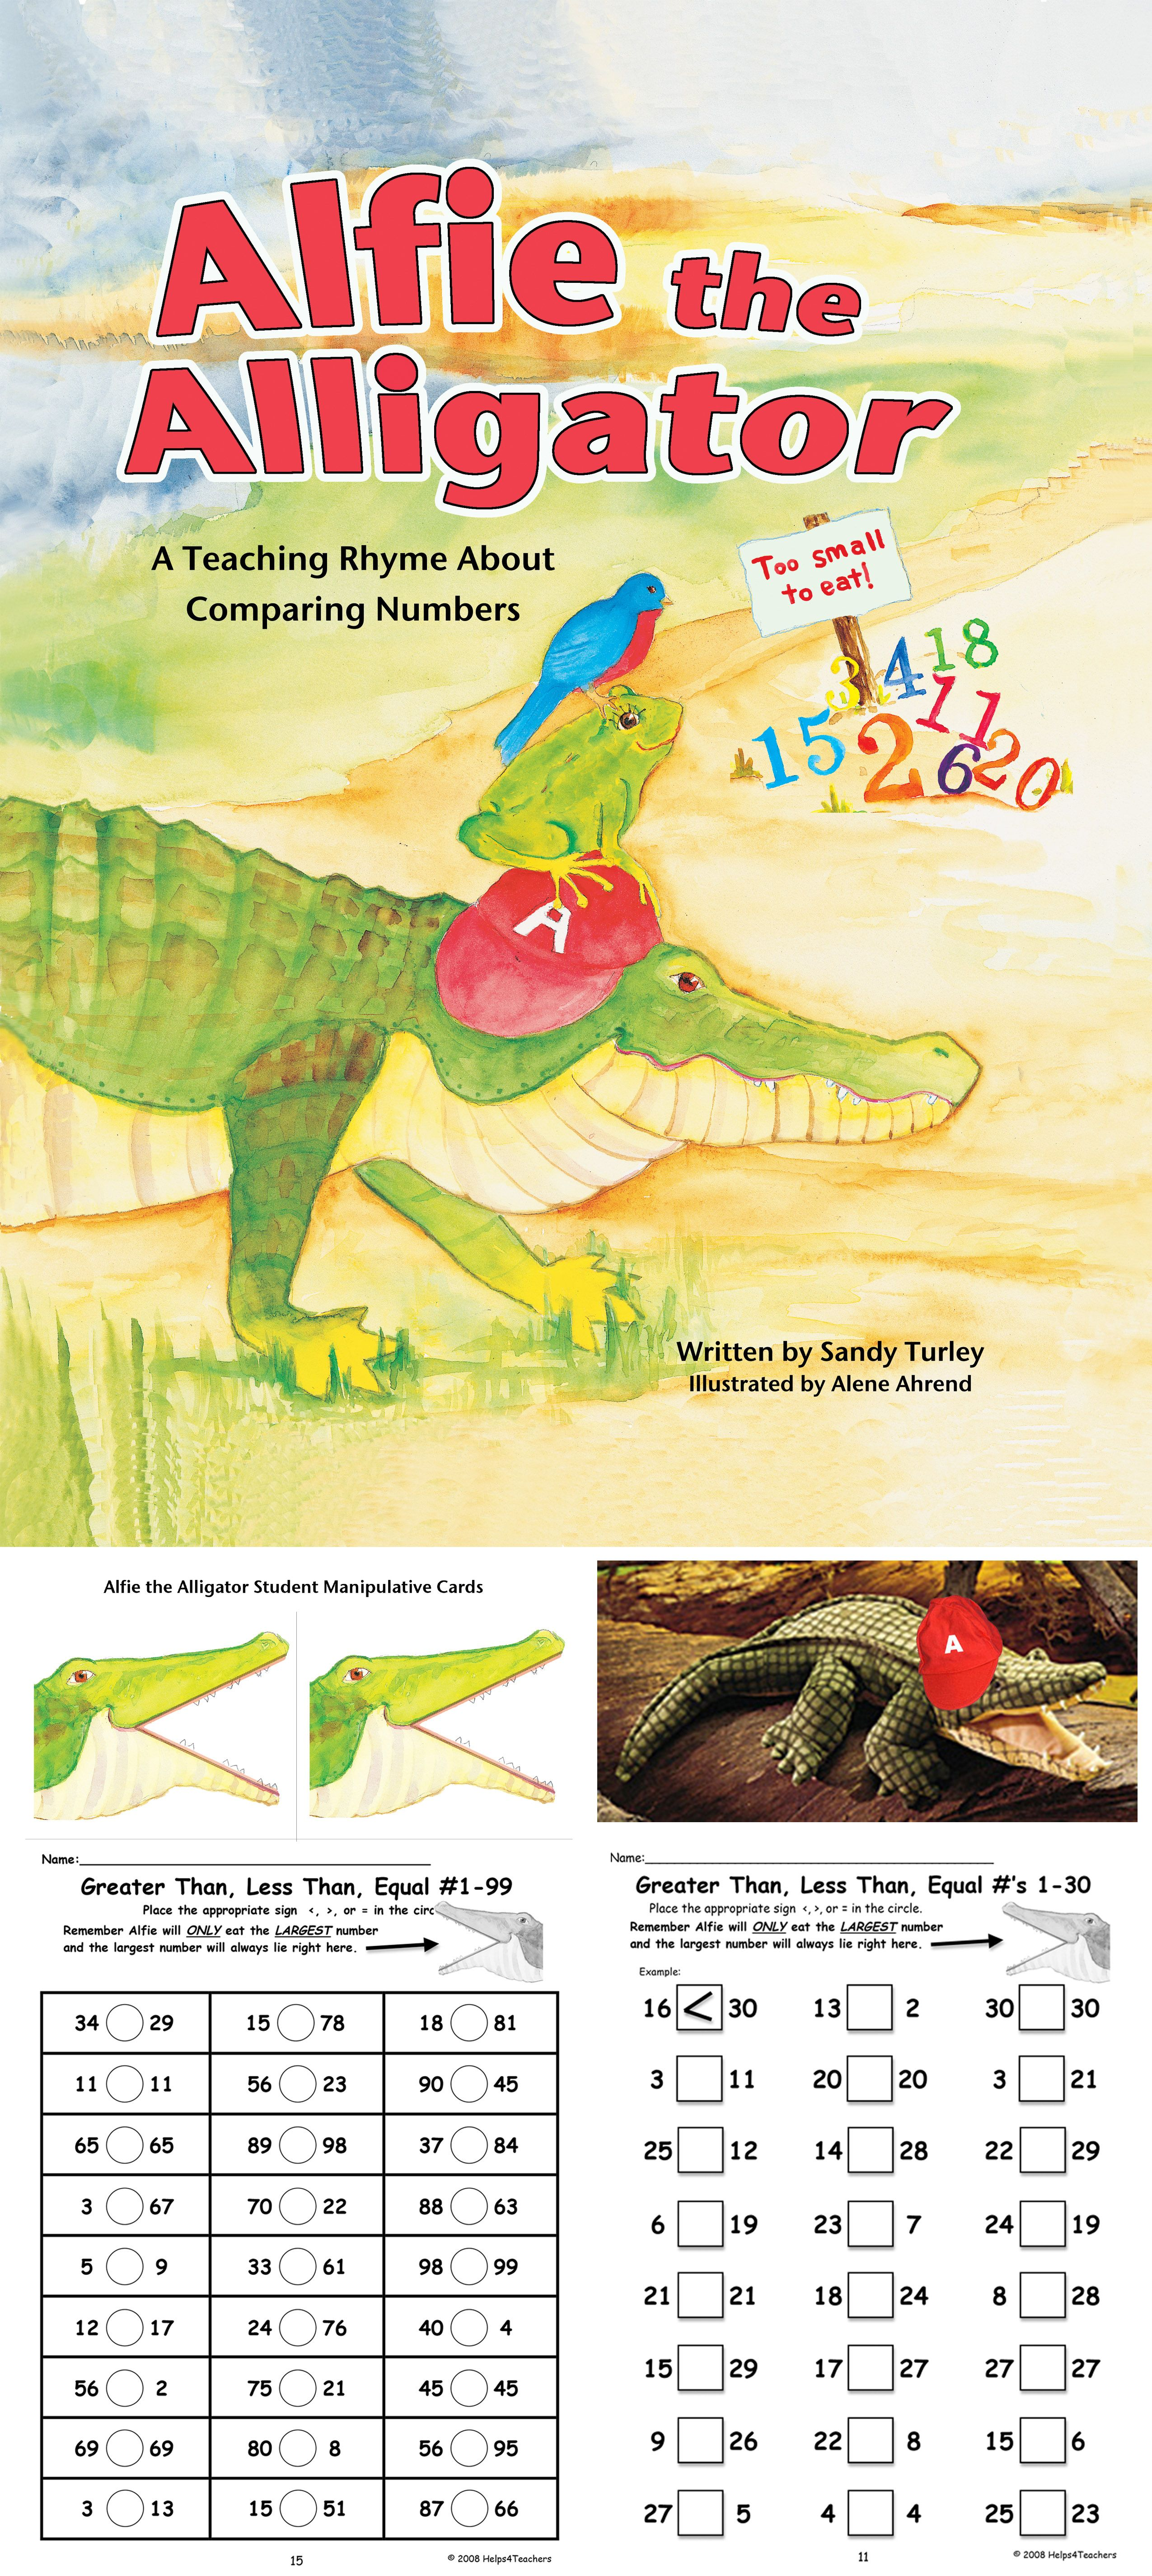 Alfie The Alligator A Teaching Rhyme About Comparing Numbers